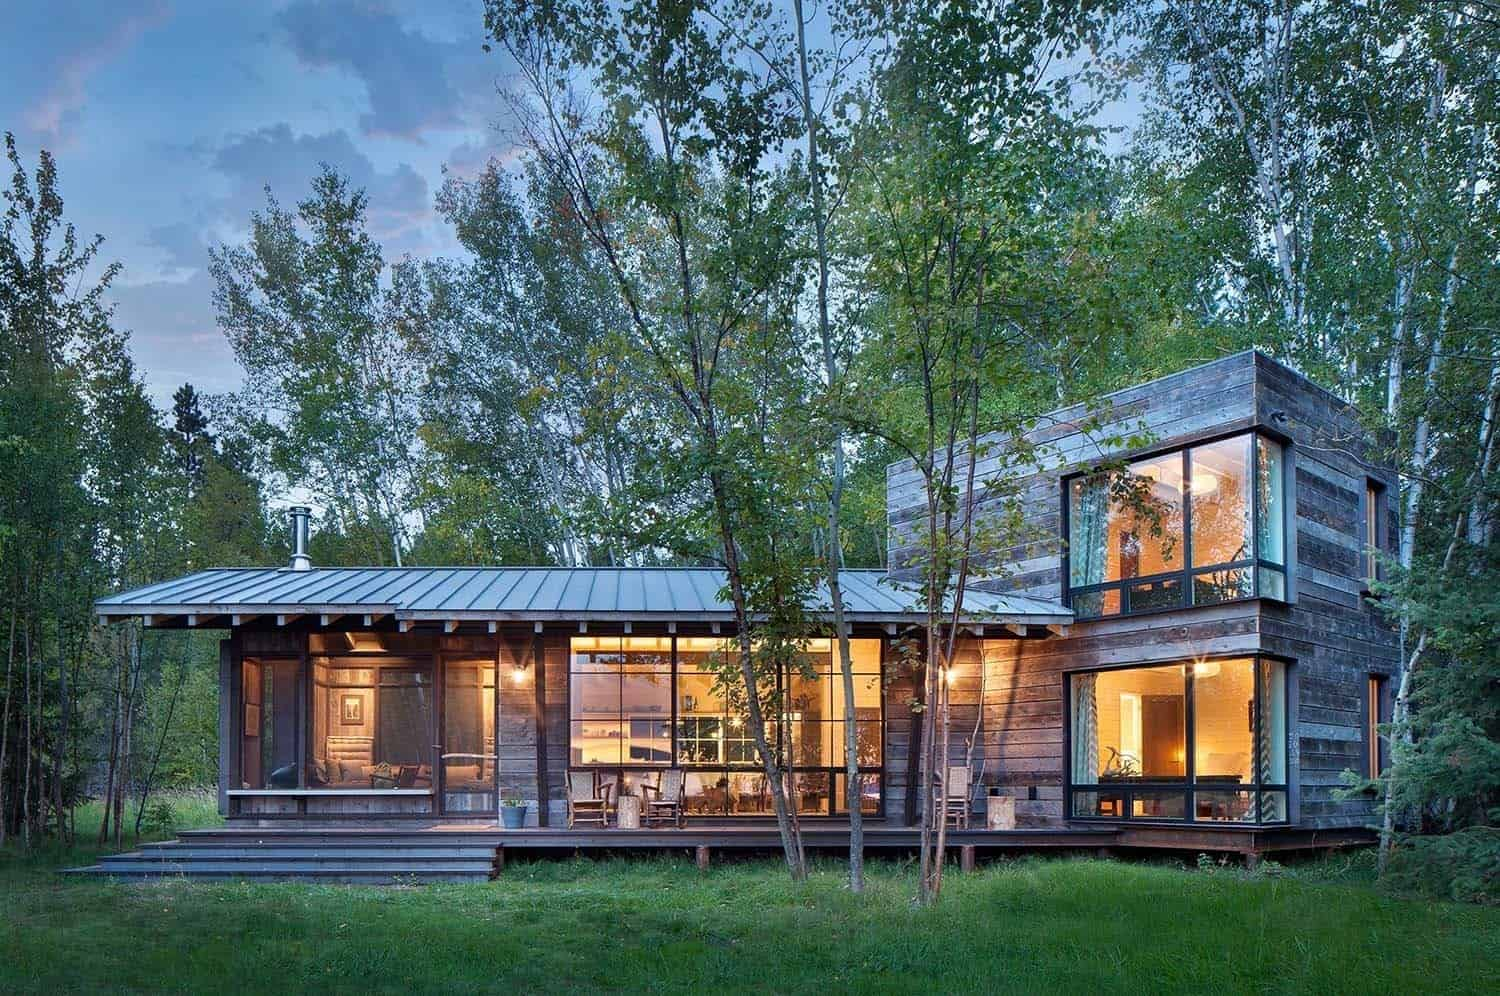 Modern rustic cabin in montana offers captivating lakeside views Rustic home architecture